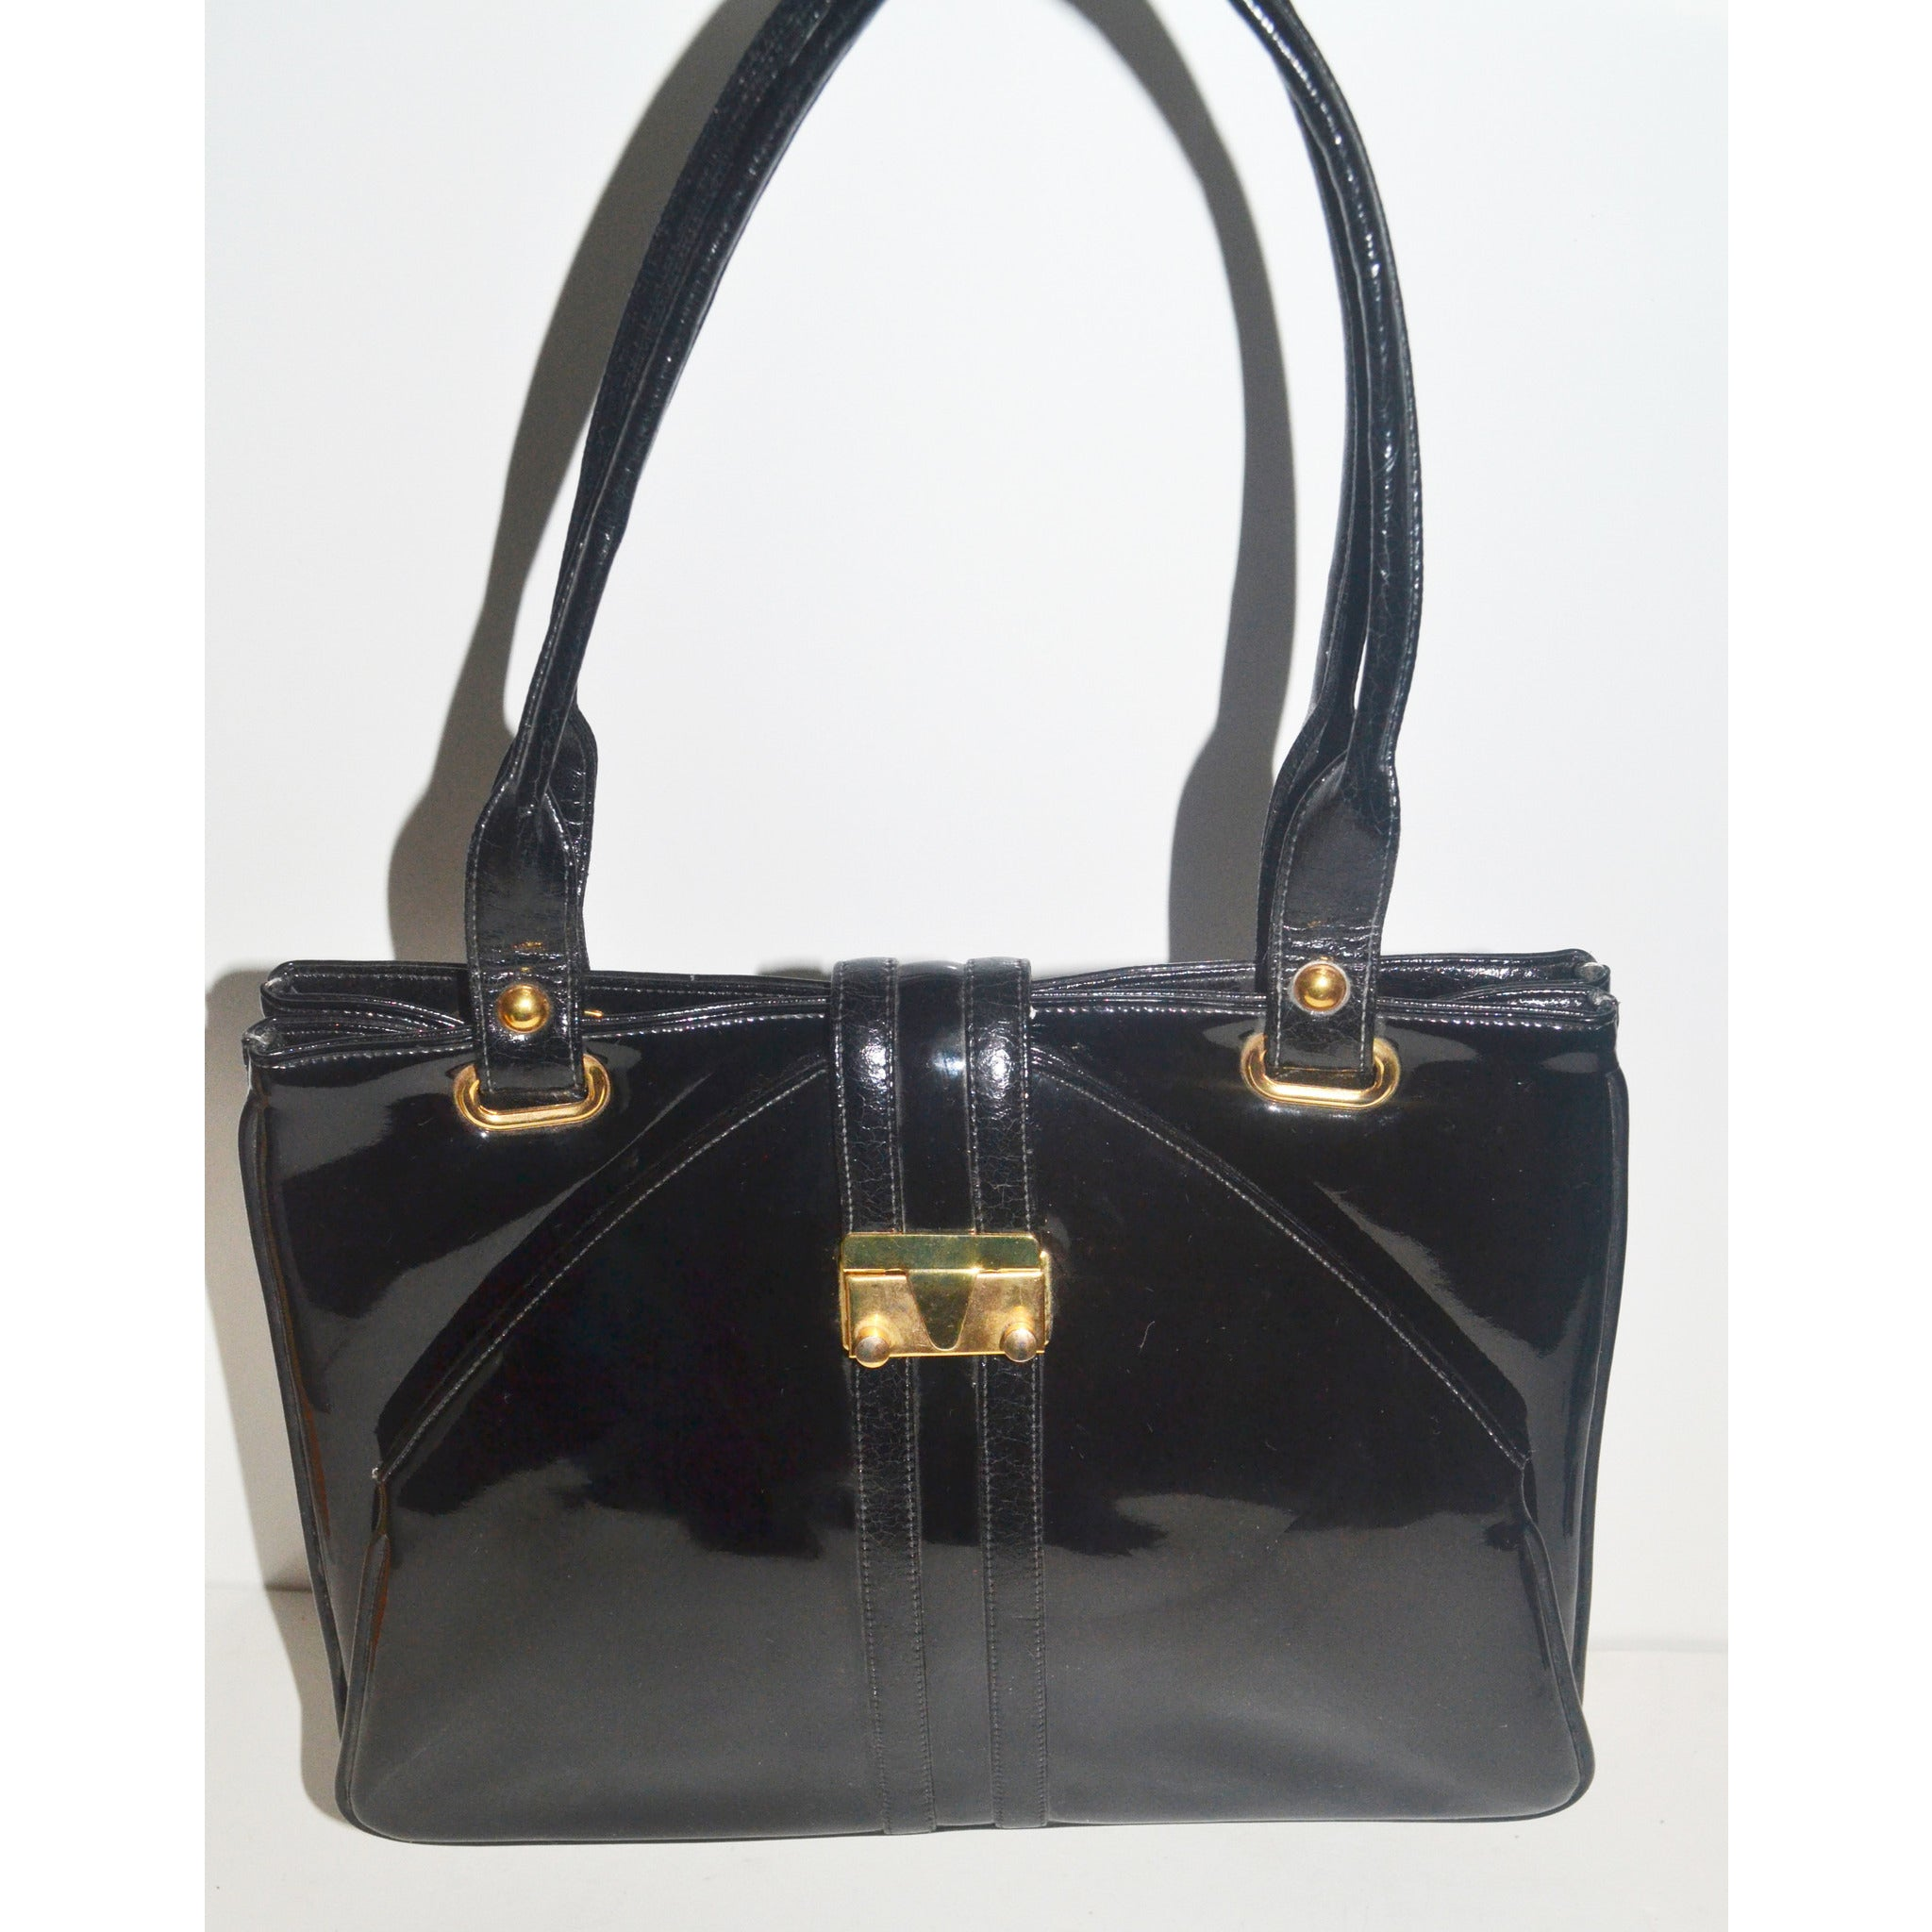 Vintage Black Patent Leather Handbag By Francois